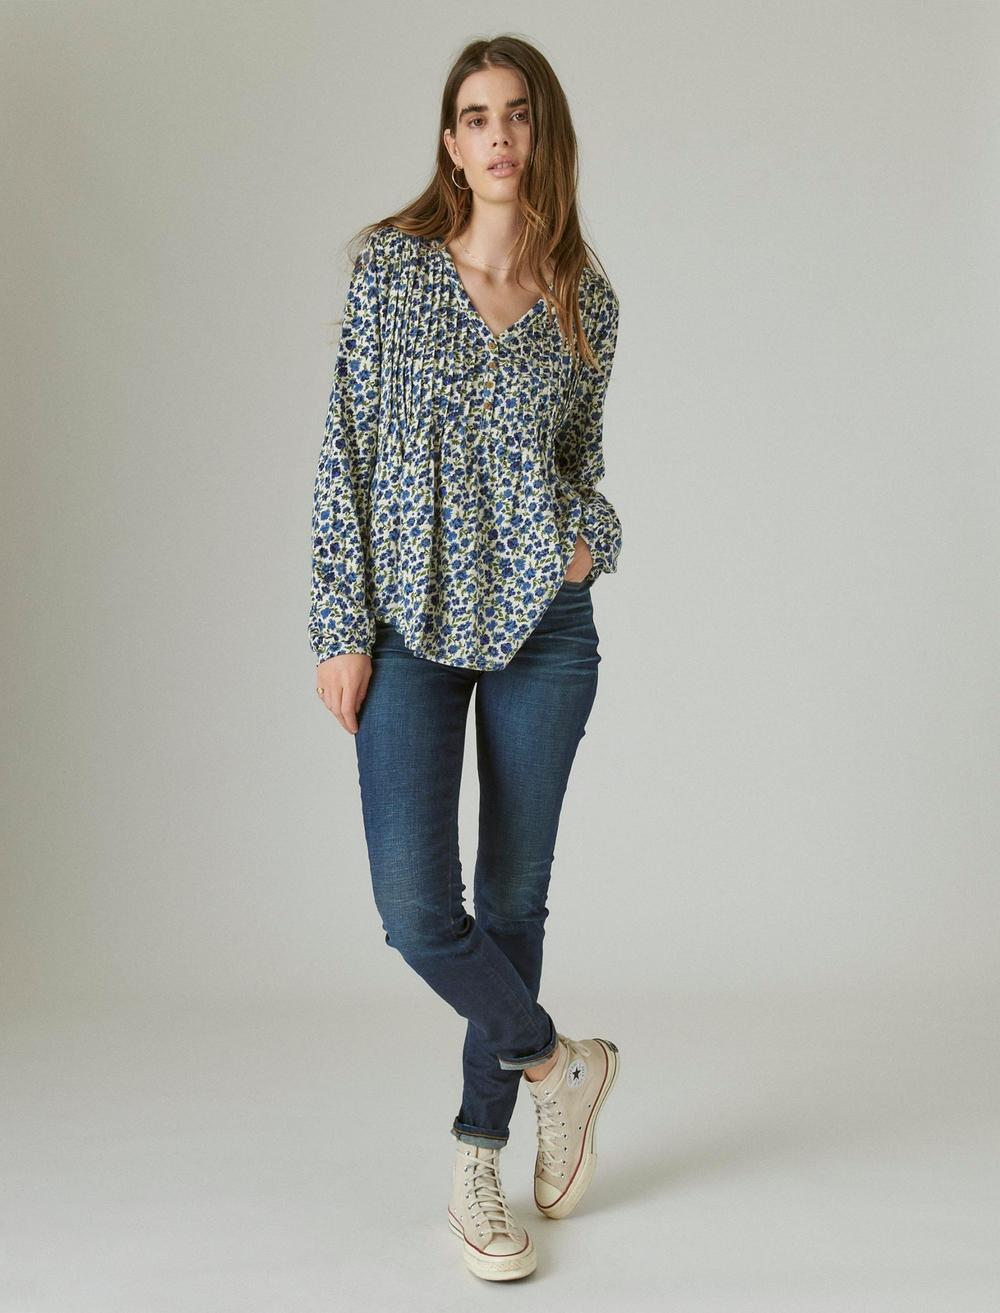 PLEATED V-NECK KNIT TOP, image 2